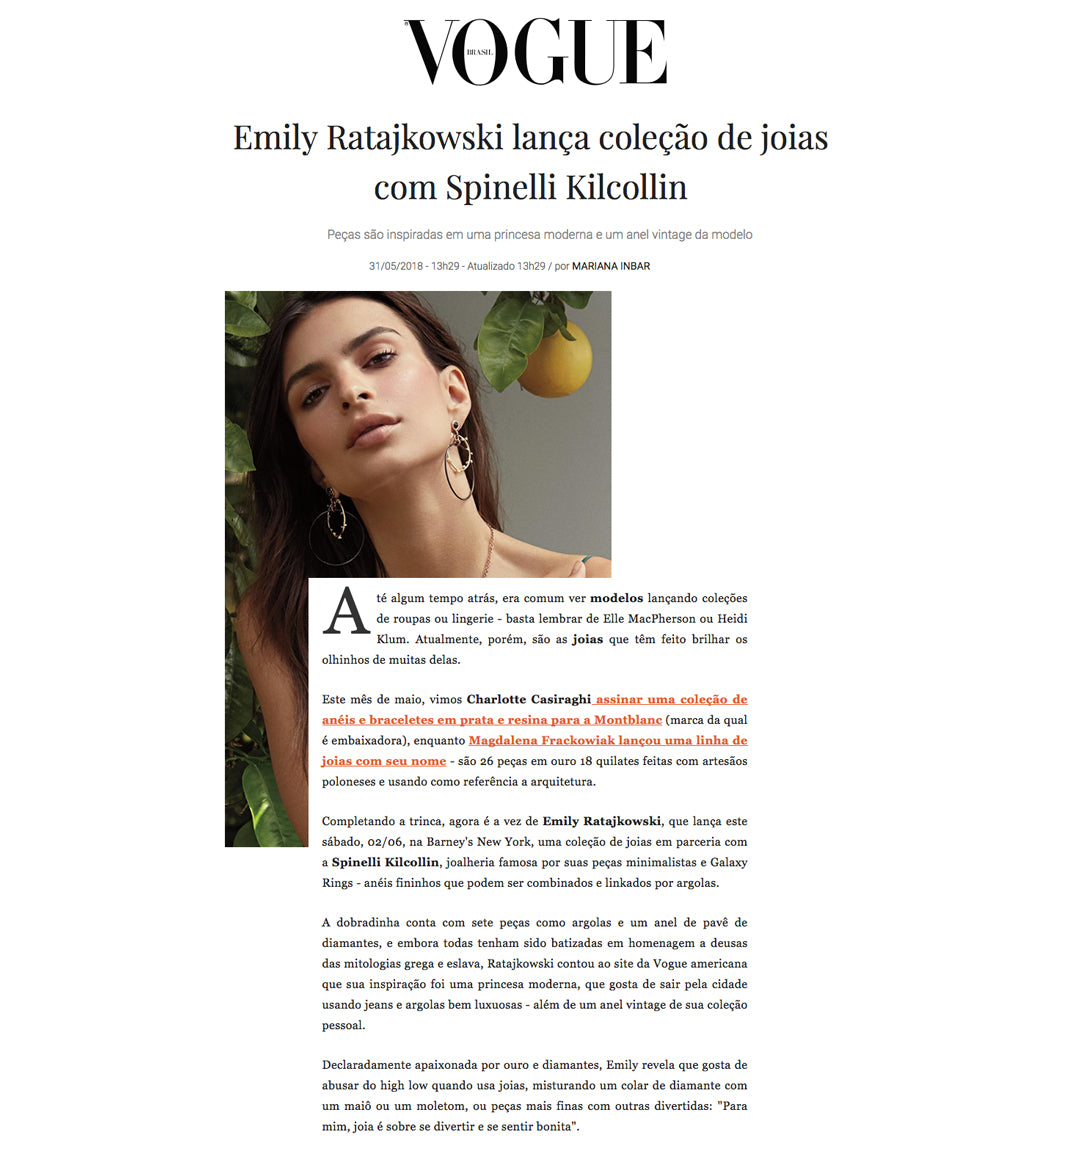 vogue globo brasil brazil spinelli kilcollin emrata emily ratajkowski collaboration luxury jewelry design linked-ring pendant necklace ring